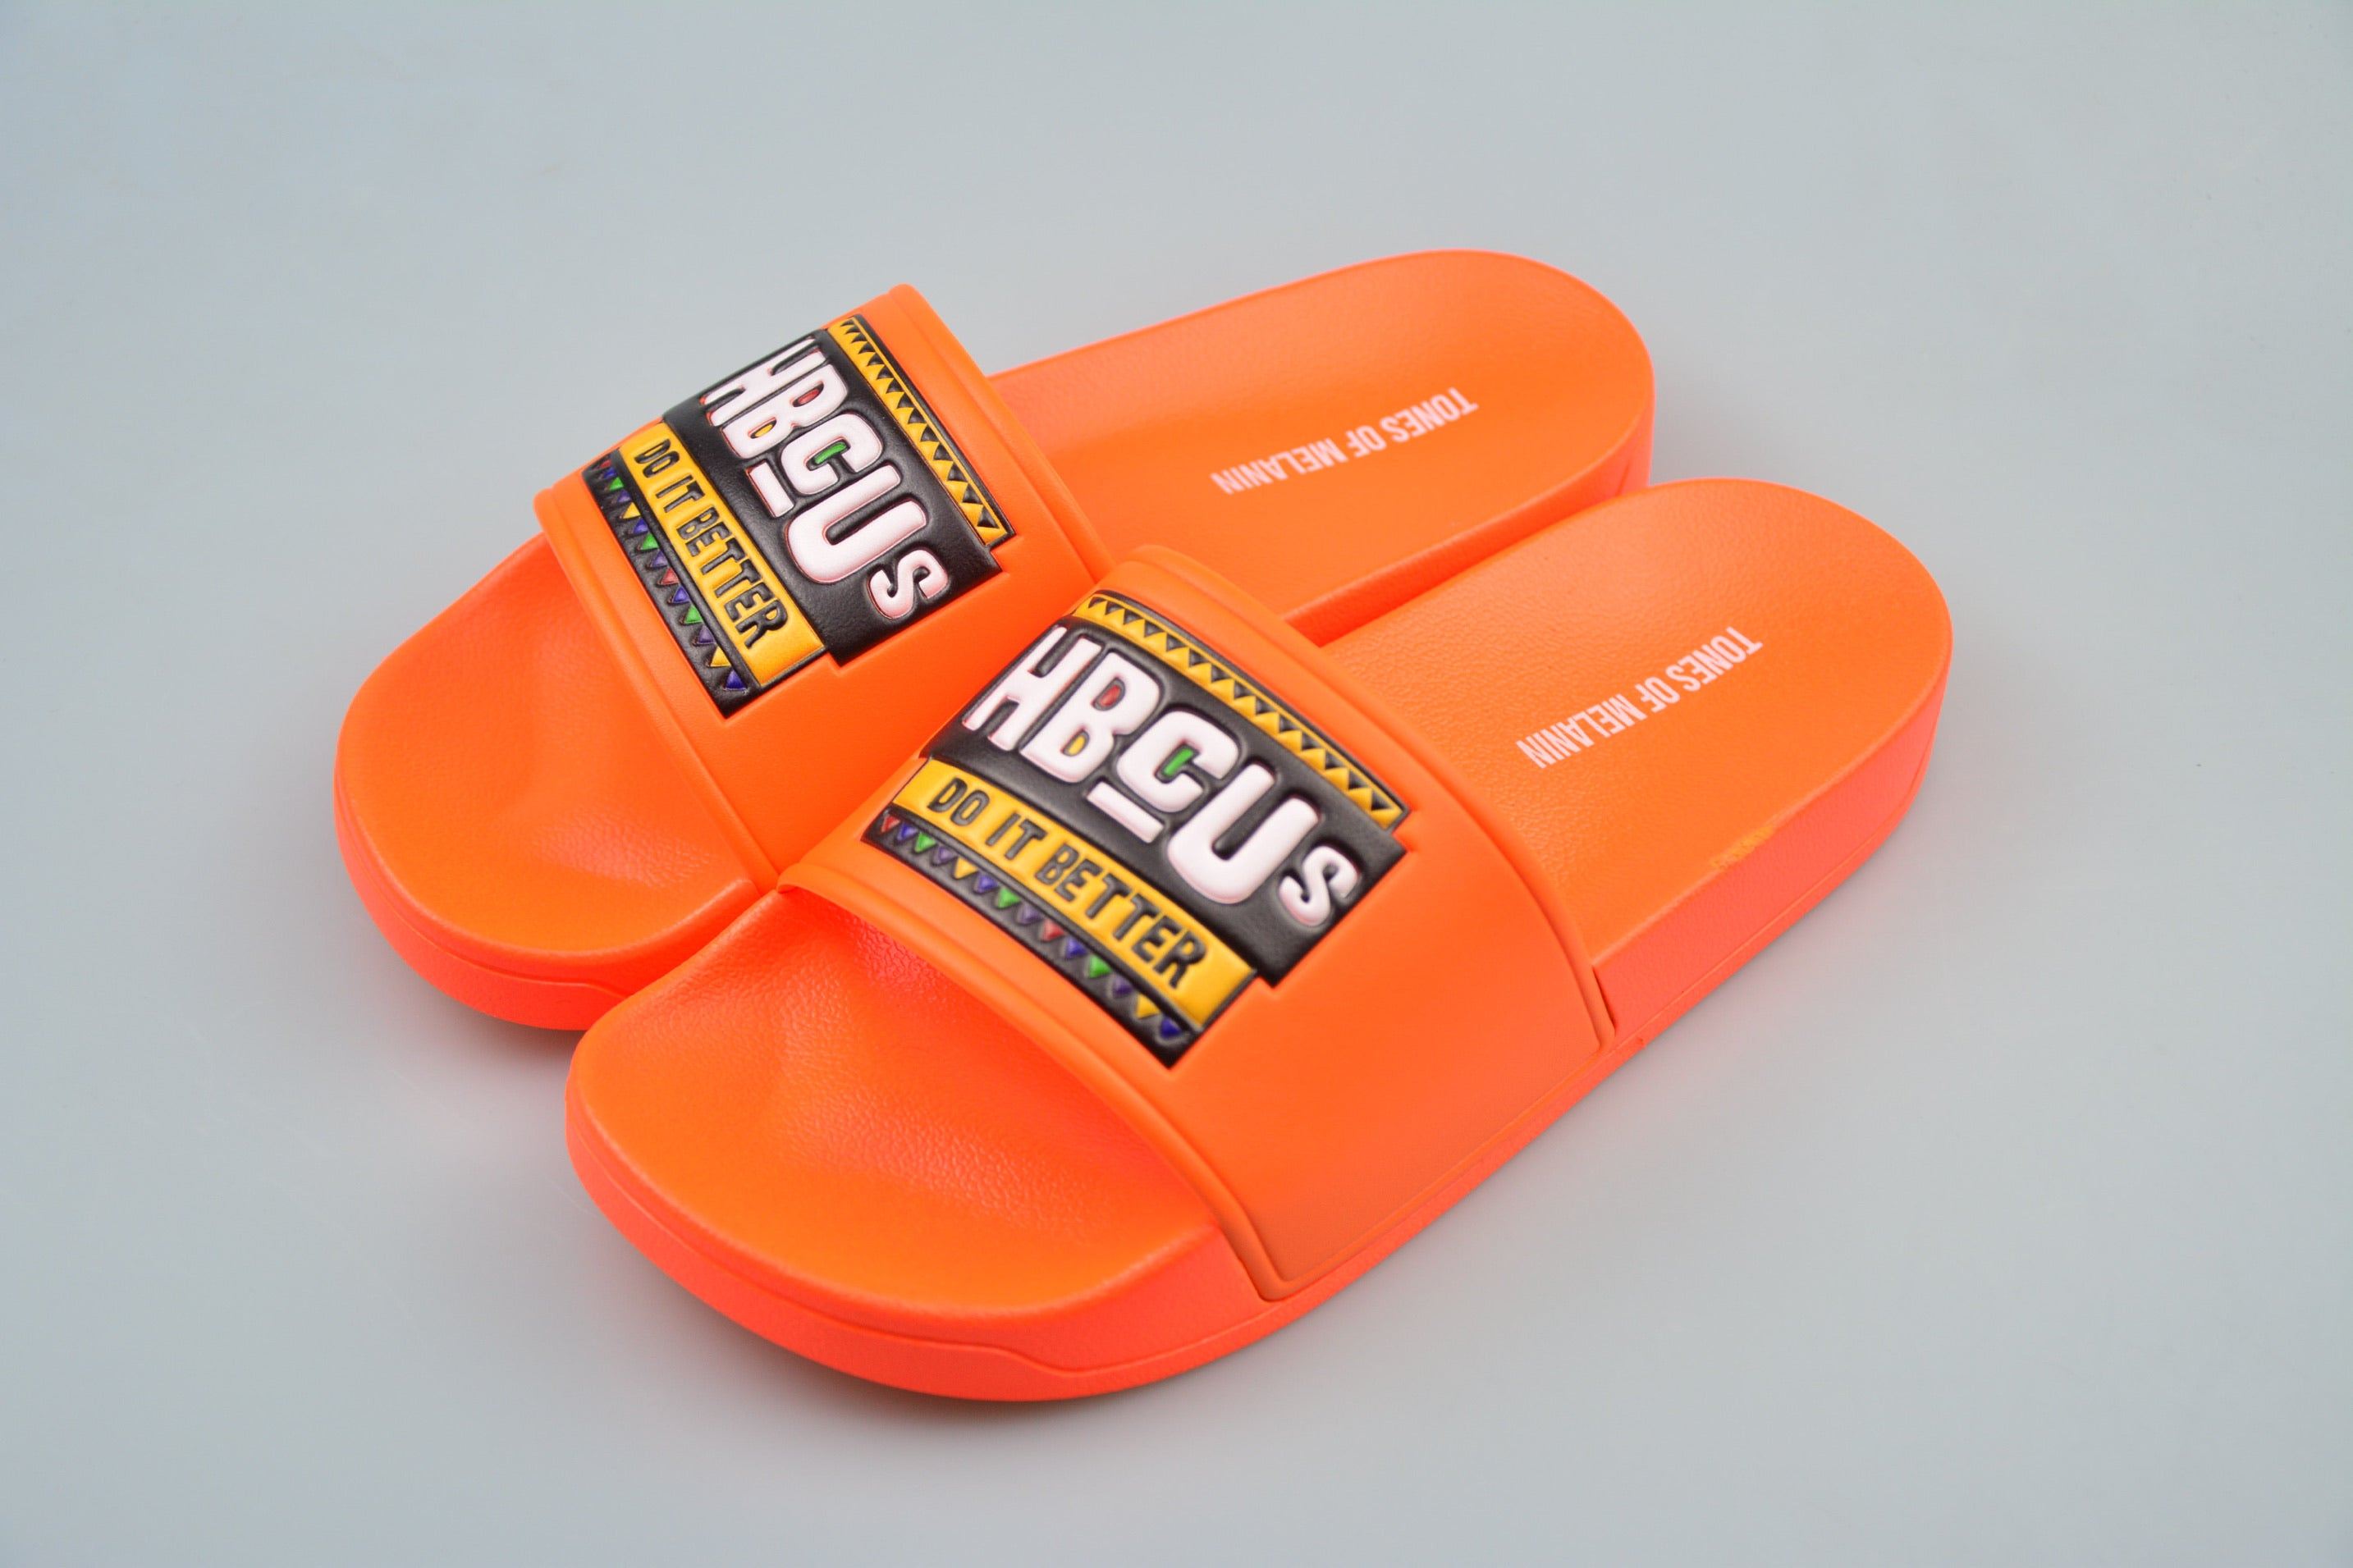 Orange HBCUs do it better slides(PREORDER PLEASE ALLOW 4-5 WEEKS FOR SHIPPING)